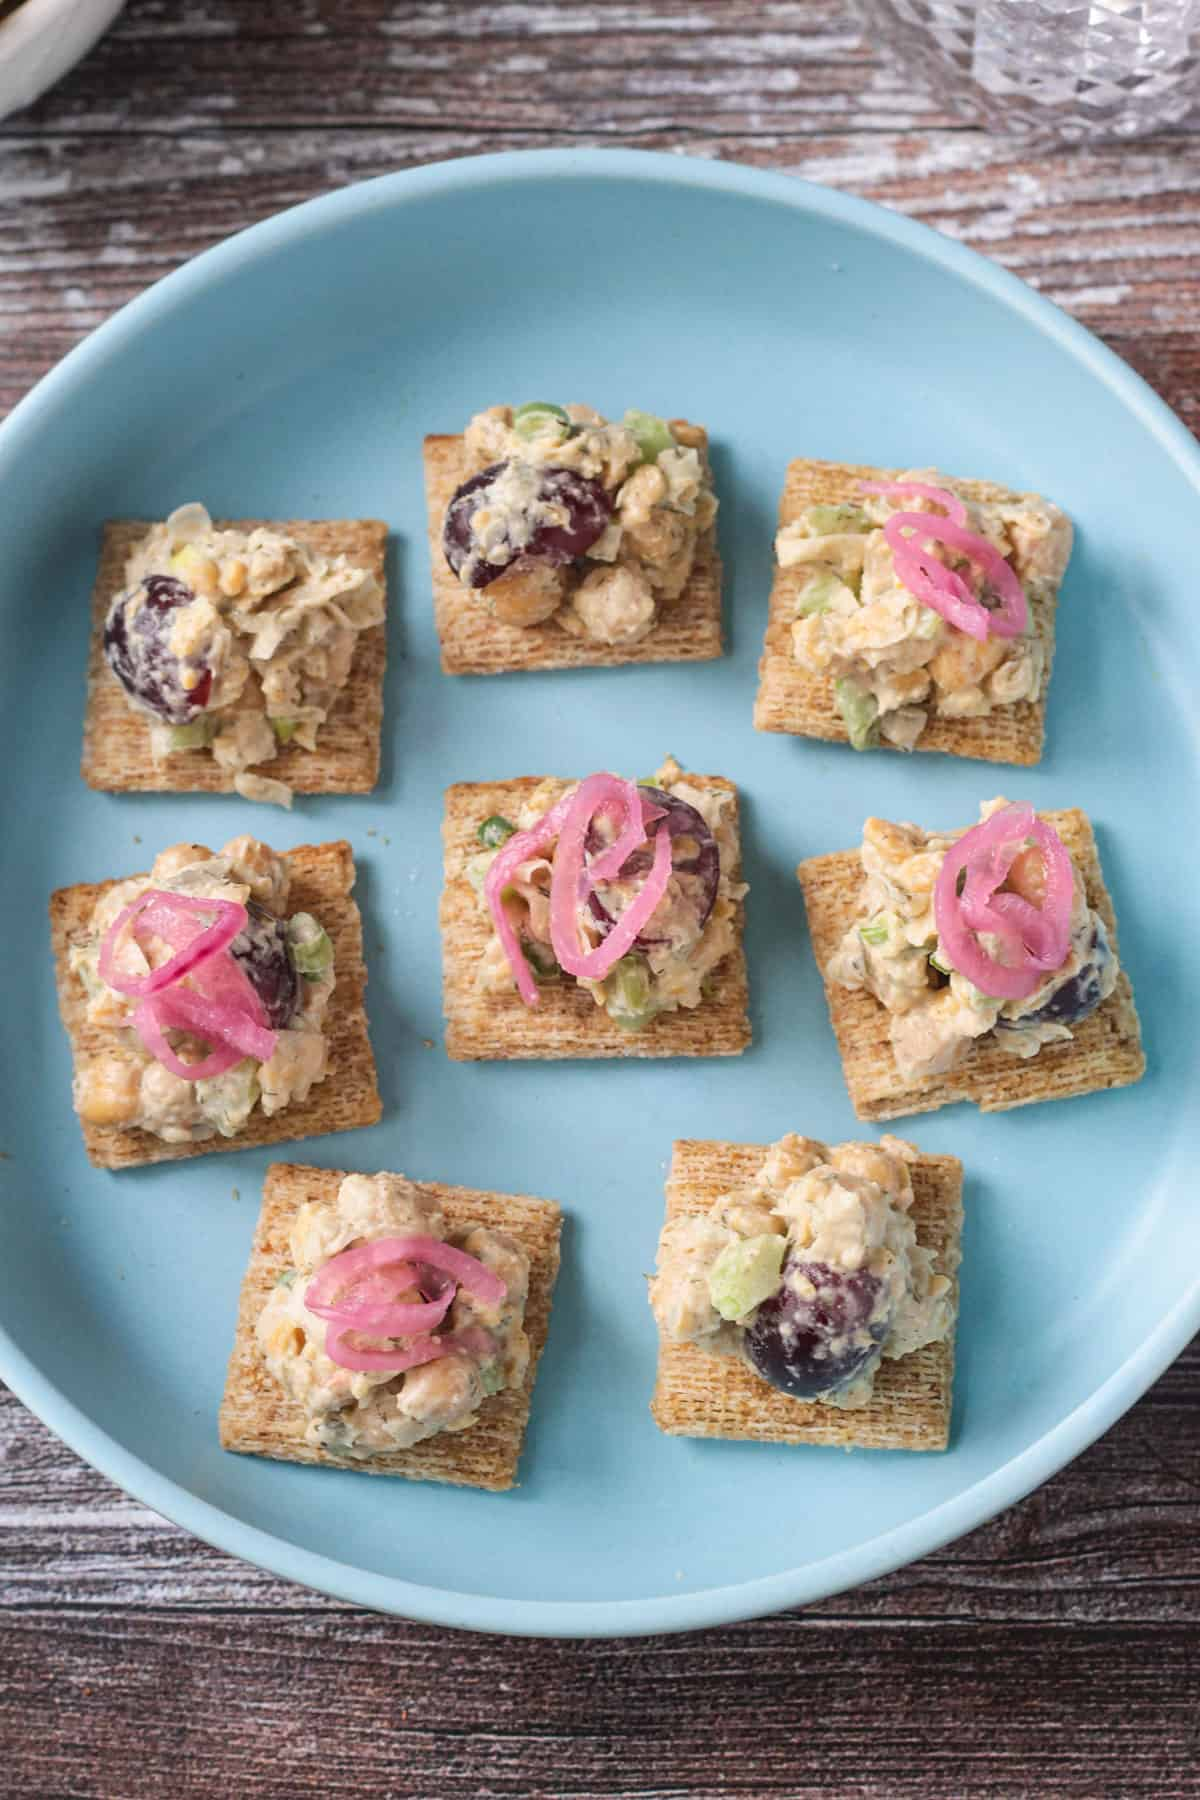 8 wheat crackers topped with chickpea salad and pickled red onions on a blue plate.